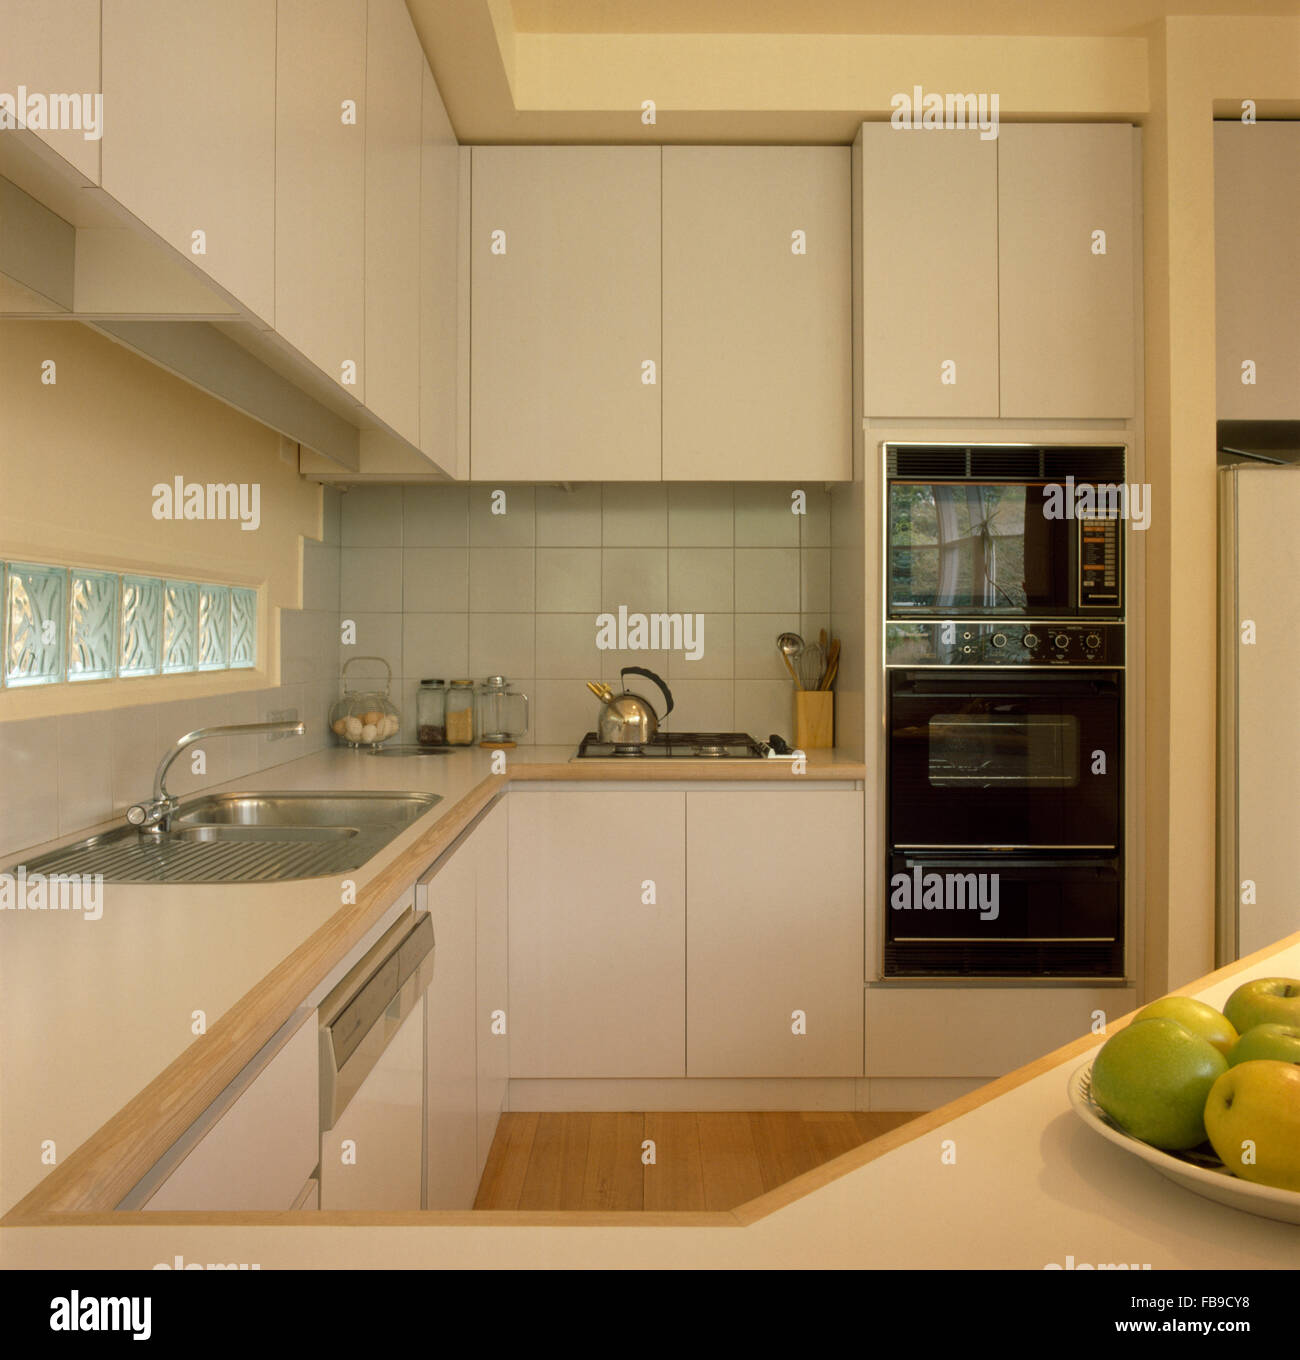 Eye level kitchen sink door eye oculus eye stove eye for Eye level oven kitchen designs